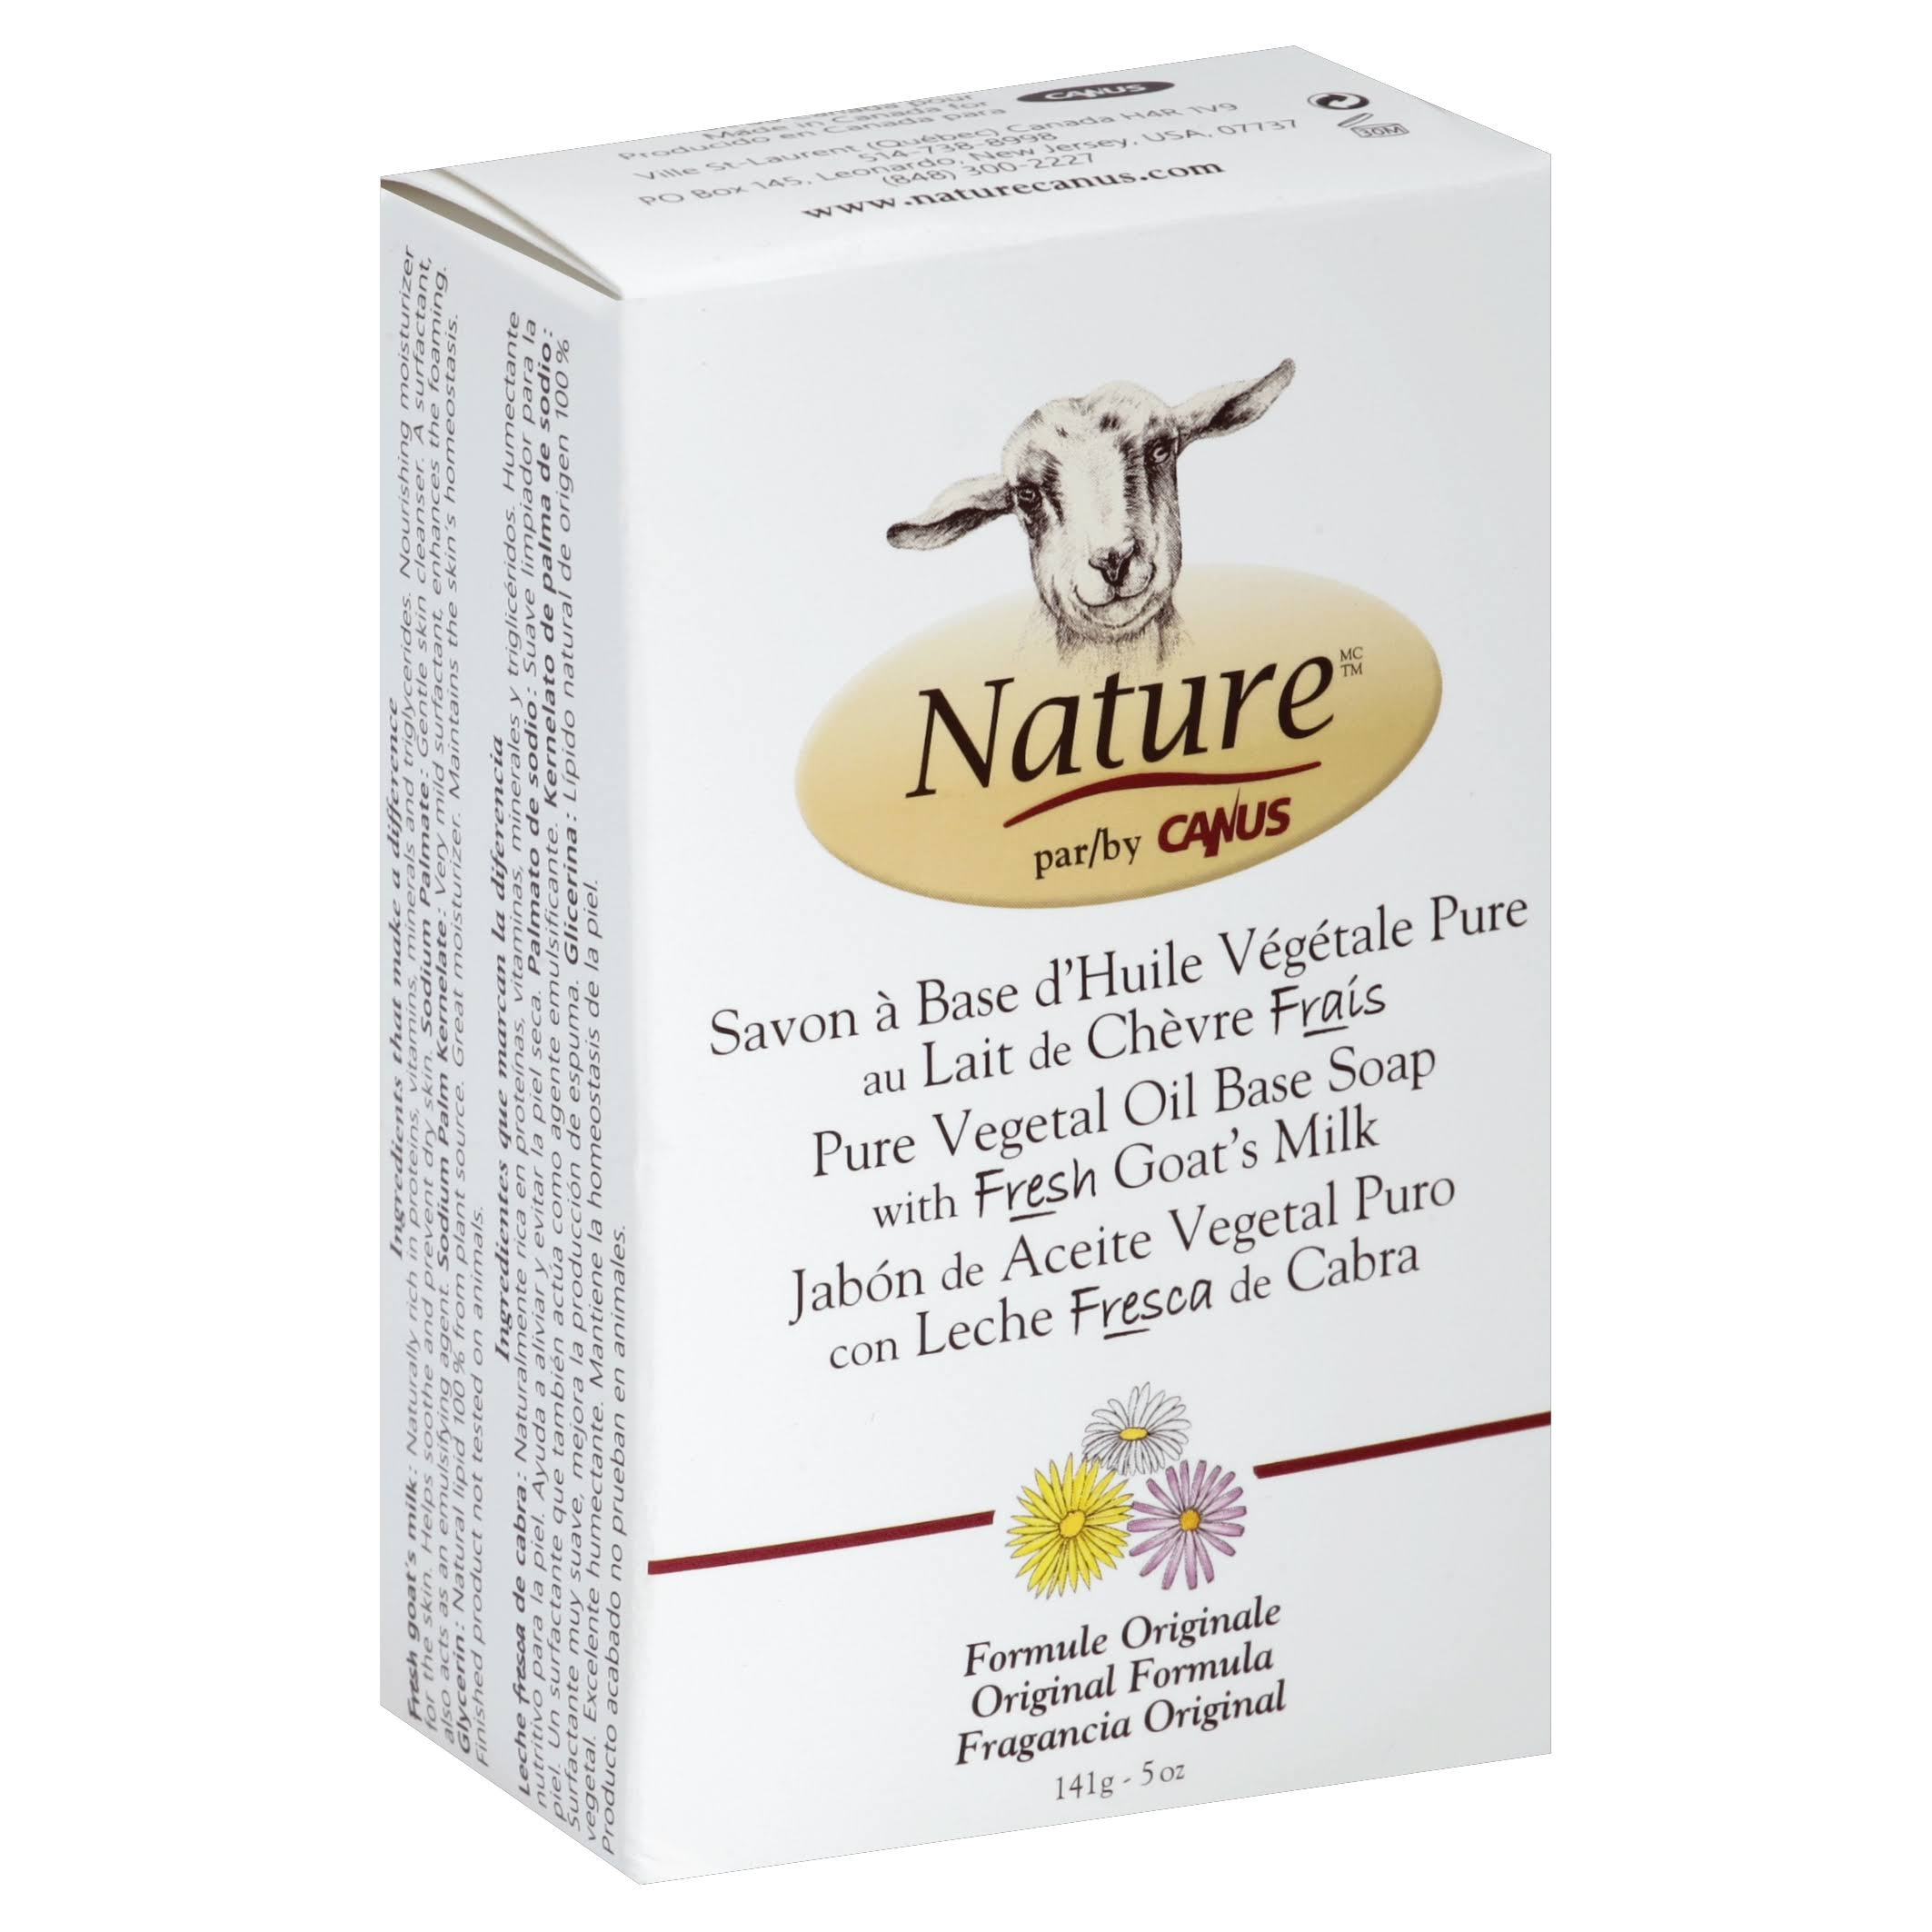 Canus Nature Pure Vegetable Soap - Original Formula, 5oz